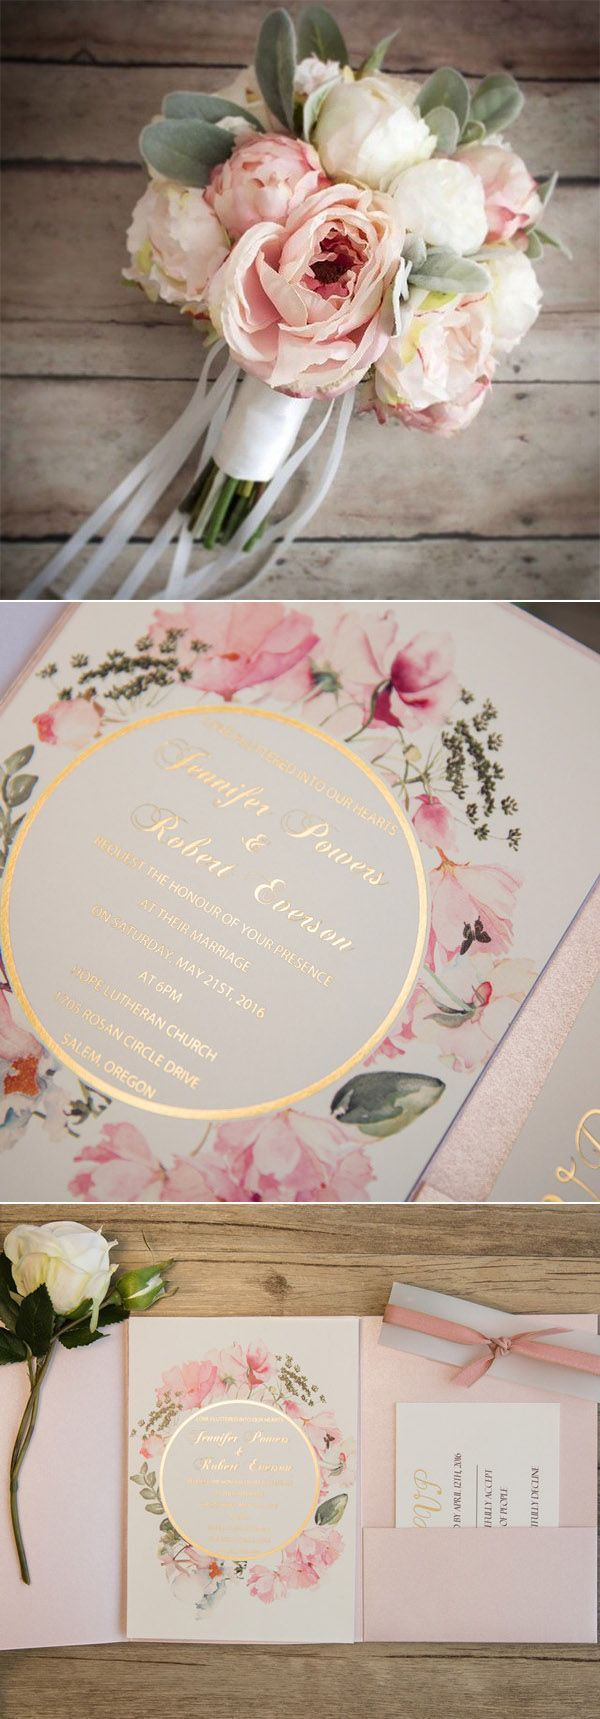 Wedding invitations with painted flowers and glittery wording are perfect for a romantic wedding. You can discover this wedding invitation on Elegant Wedding Invites.